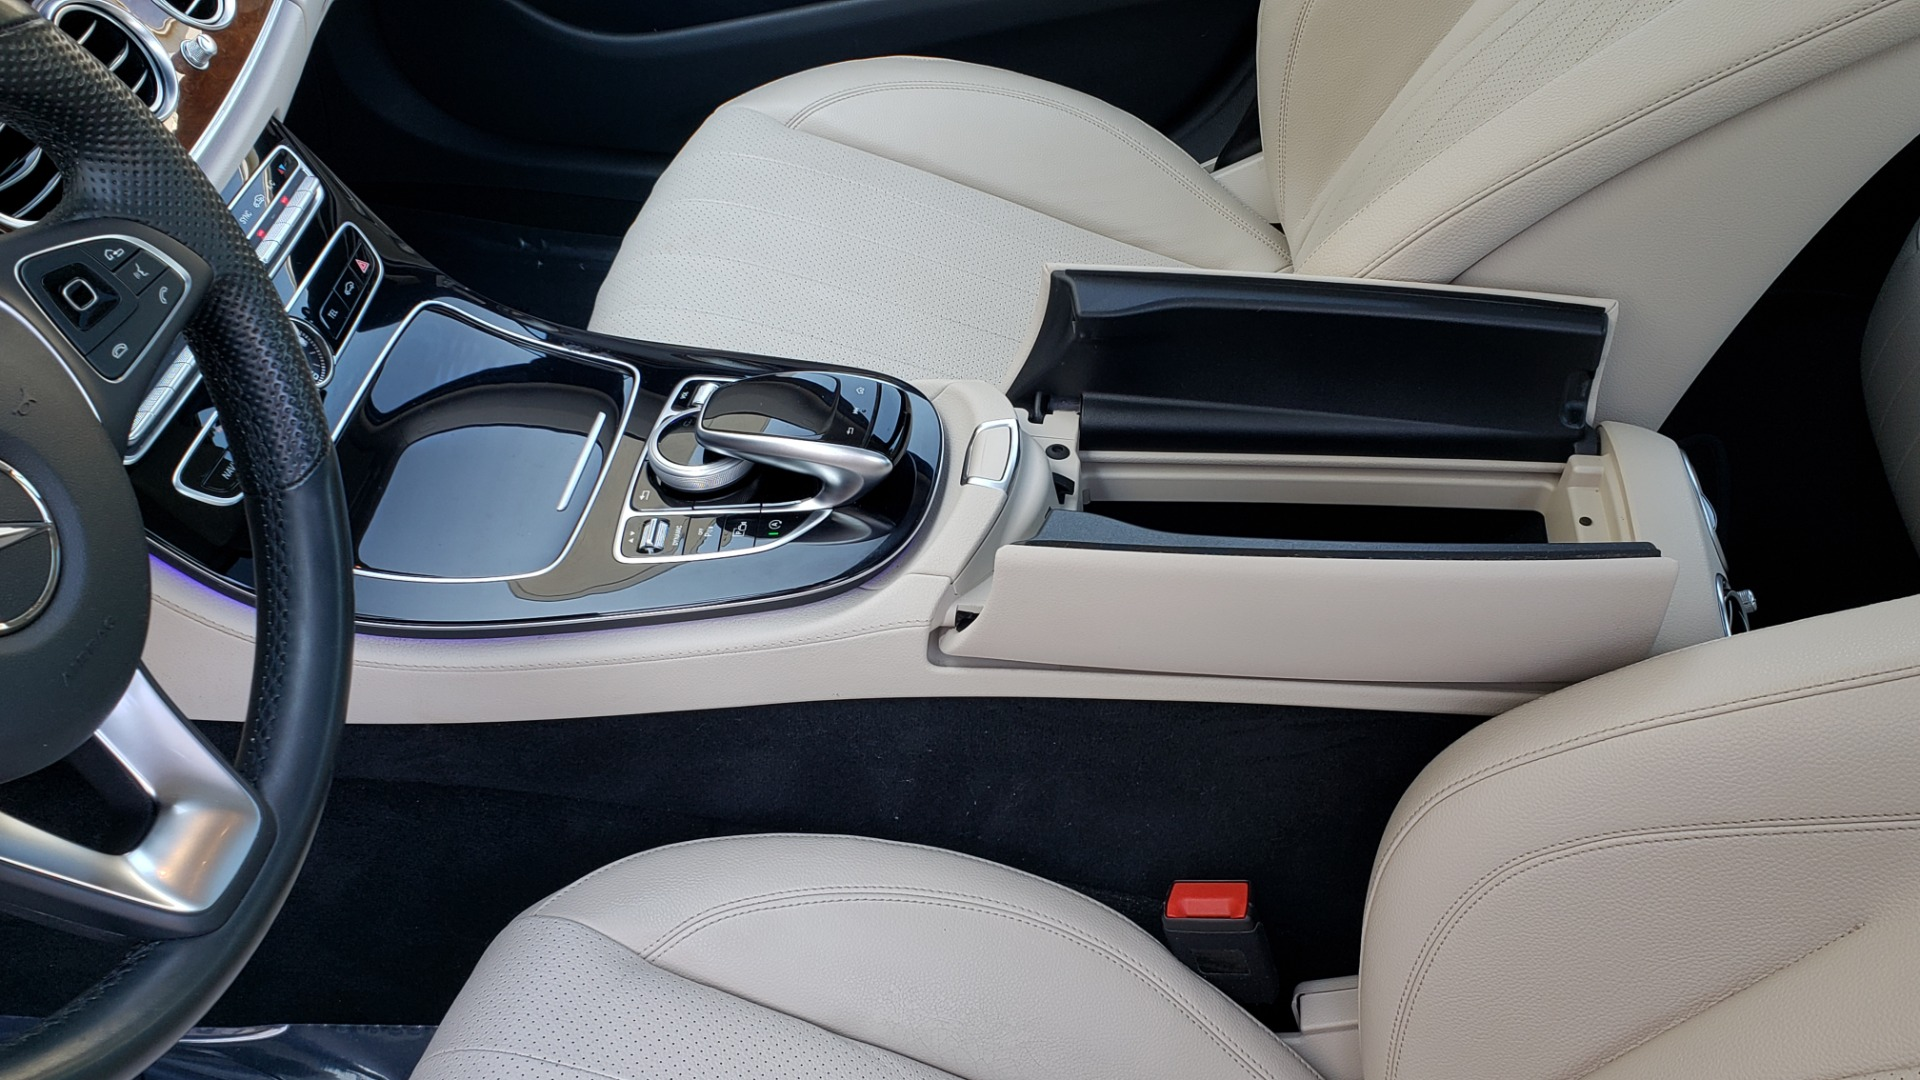 Used 2017 Mercedes-Benz E-Class E 300 PREMIUM / RWD / NAV / SNF / PARKING PILOT / REARVIEW / BURMESTER for sale Sold at Formula Imports in Charlotte NC 28227 49